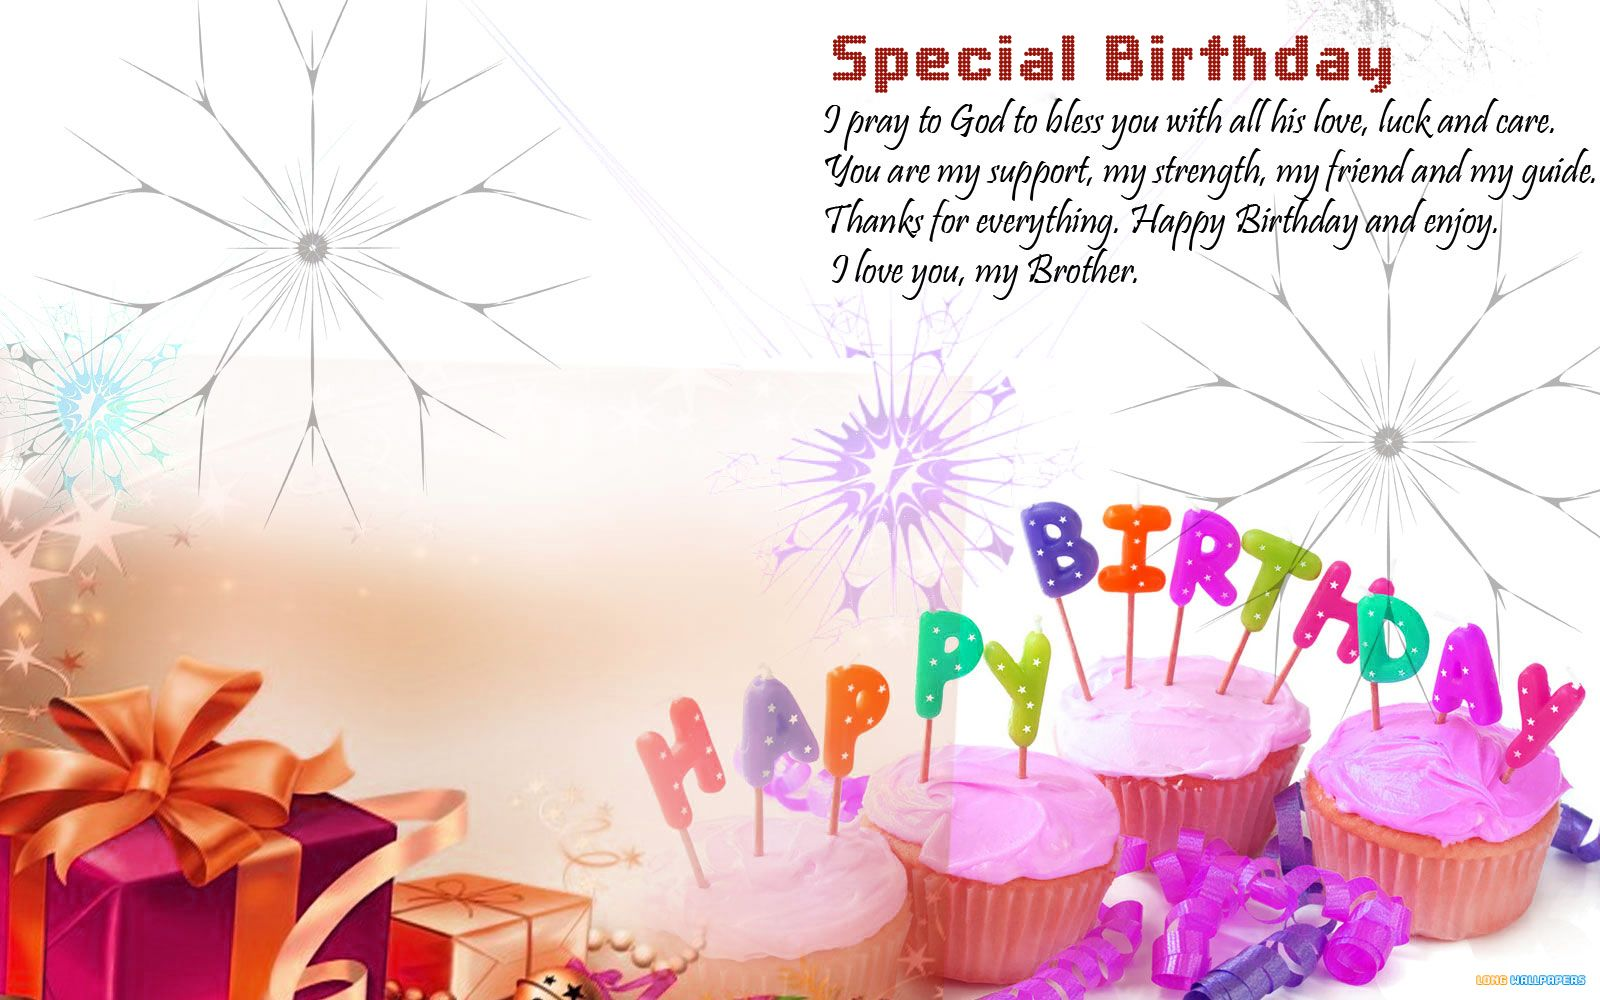 Birthday invitations by sms hd images 3 hd wallpapers places to birthday invitations by sms hd images 3 hd wallpapers stopboris Images